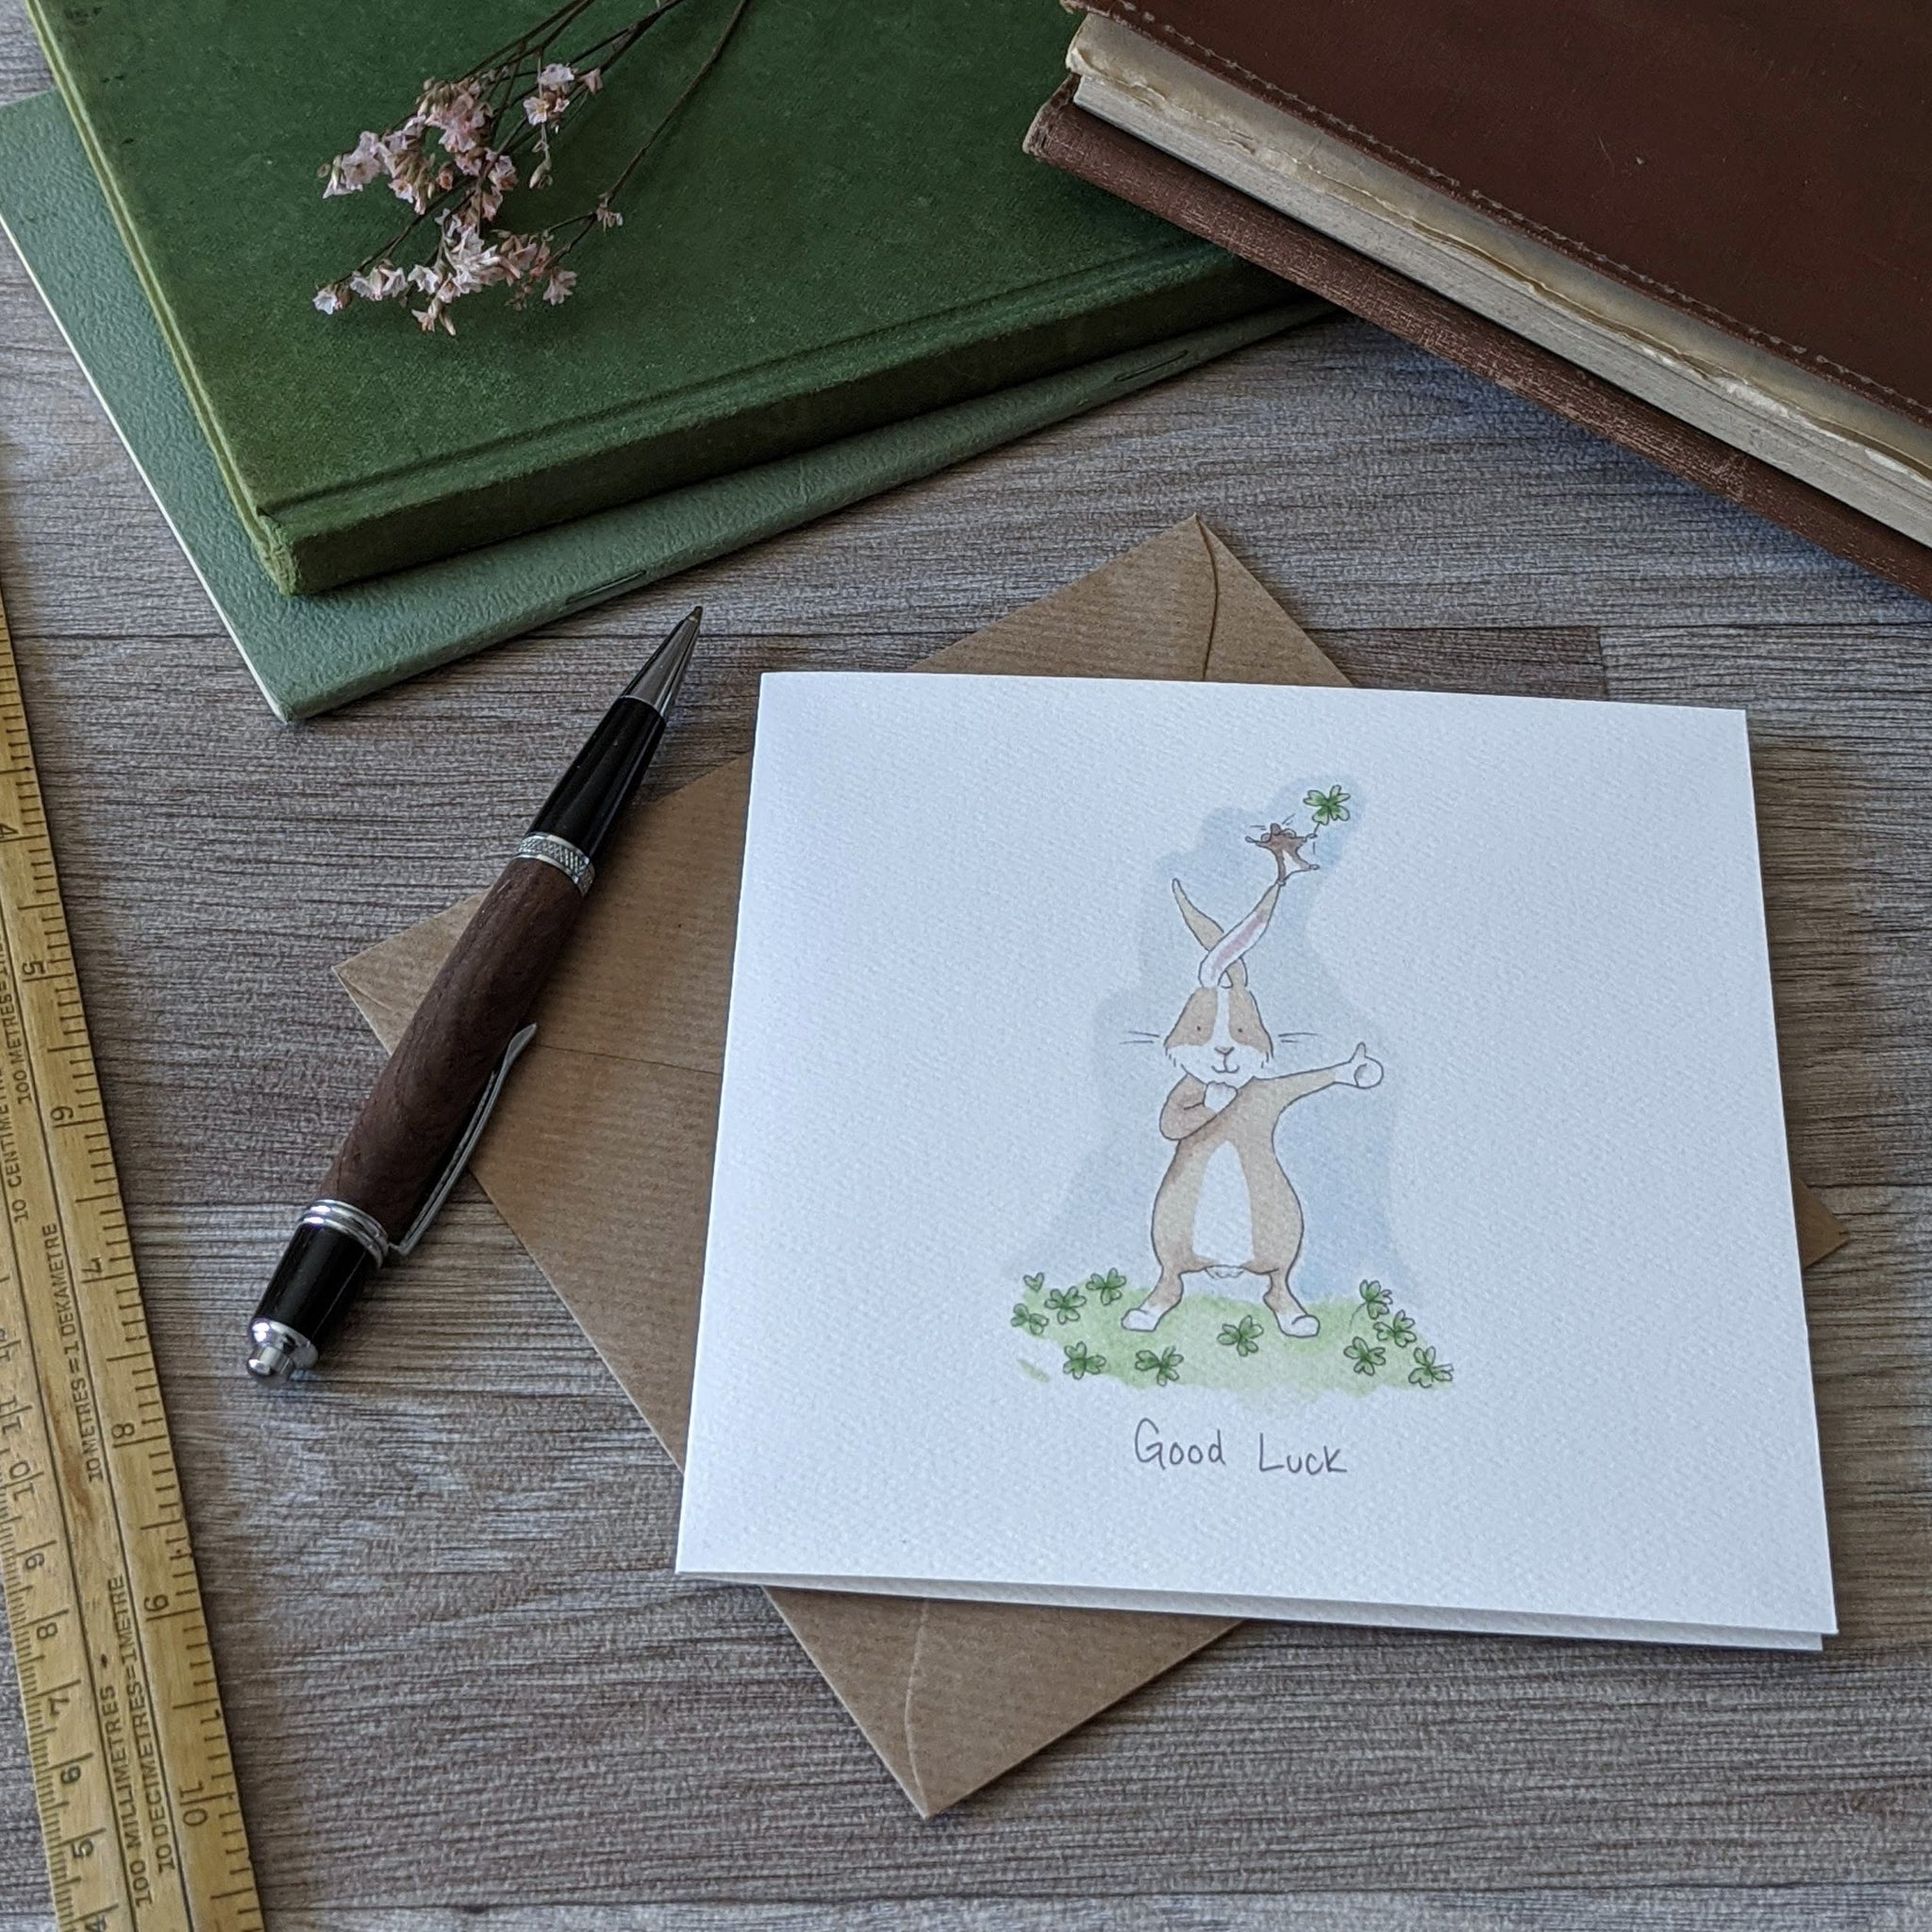 Good Luck Rabbit Card - Everything Bunny Rabbit